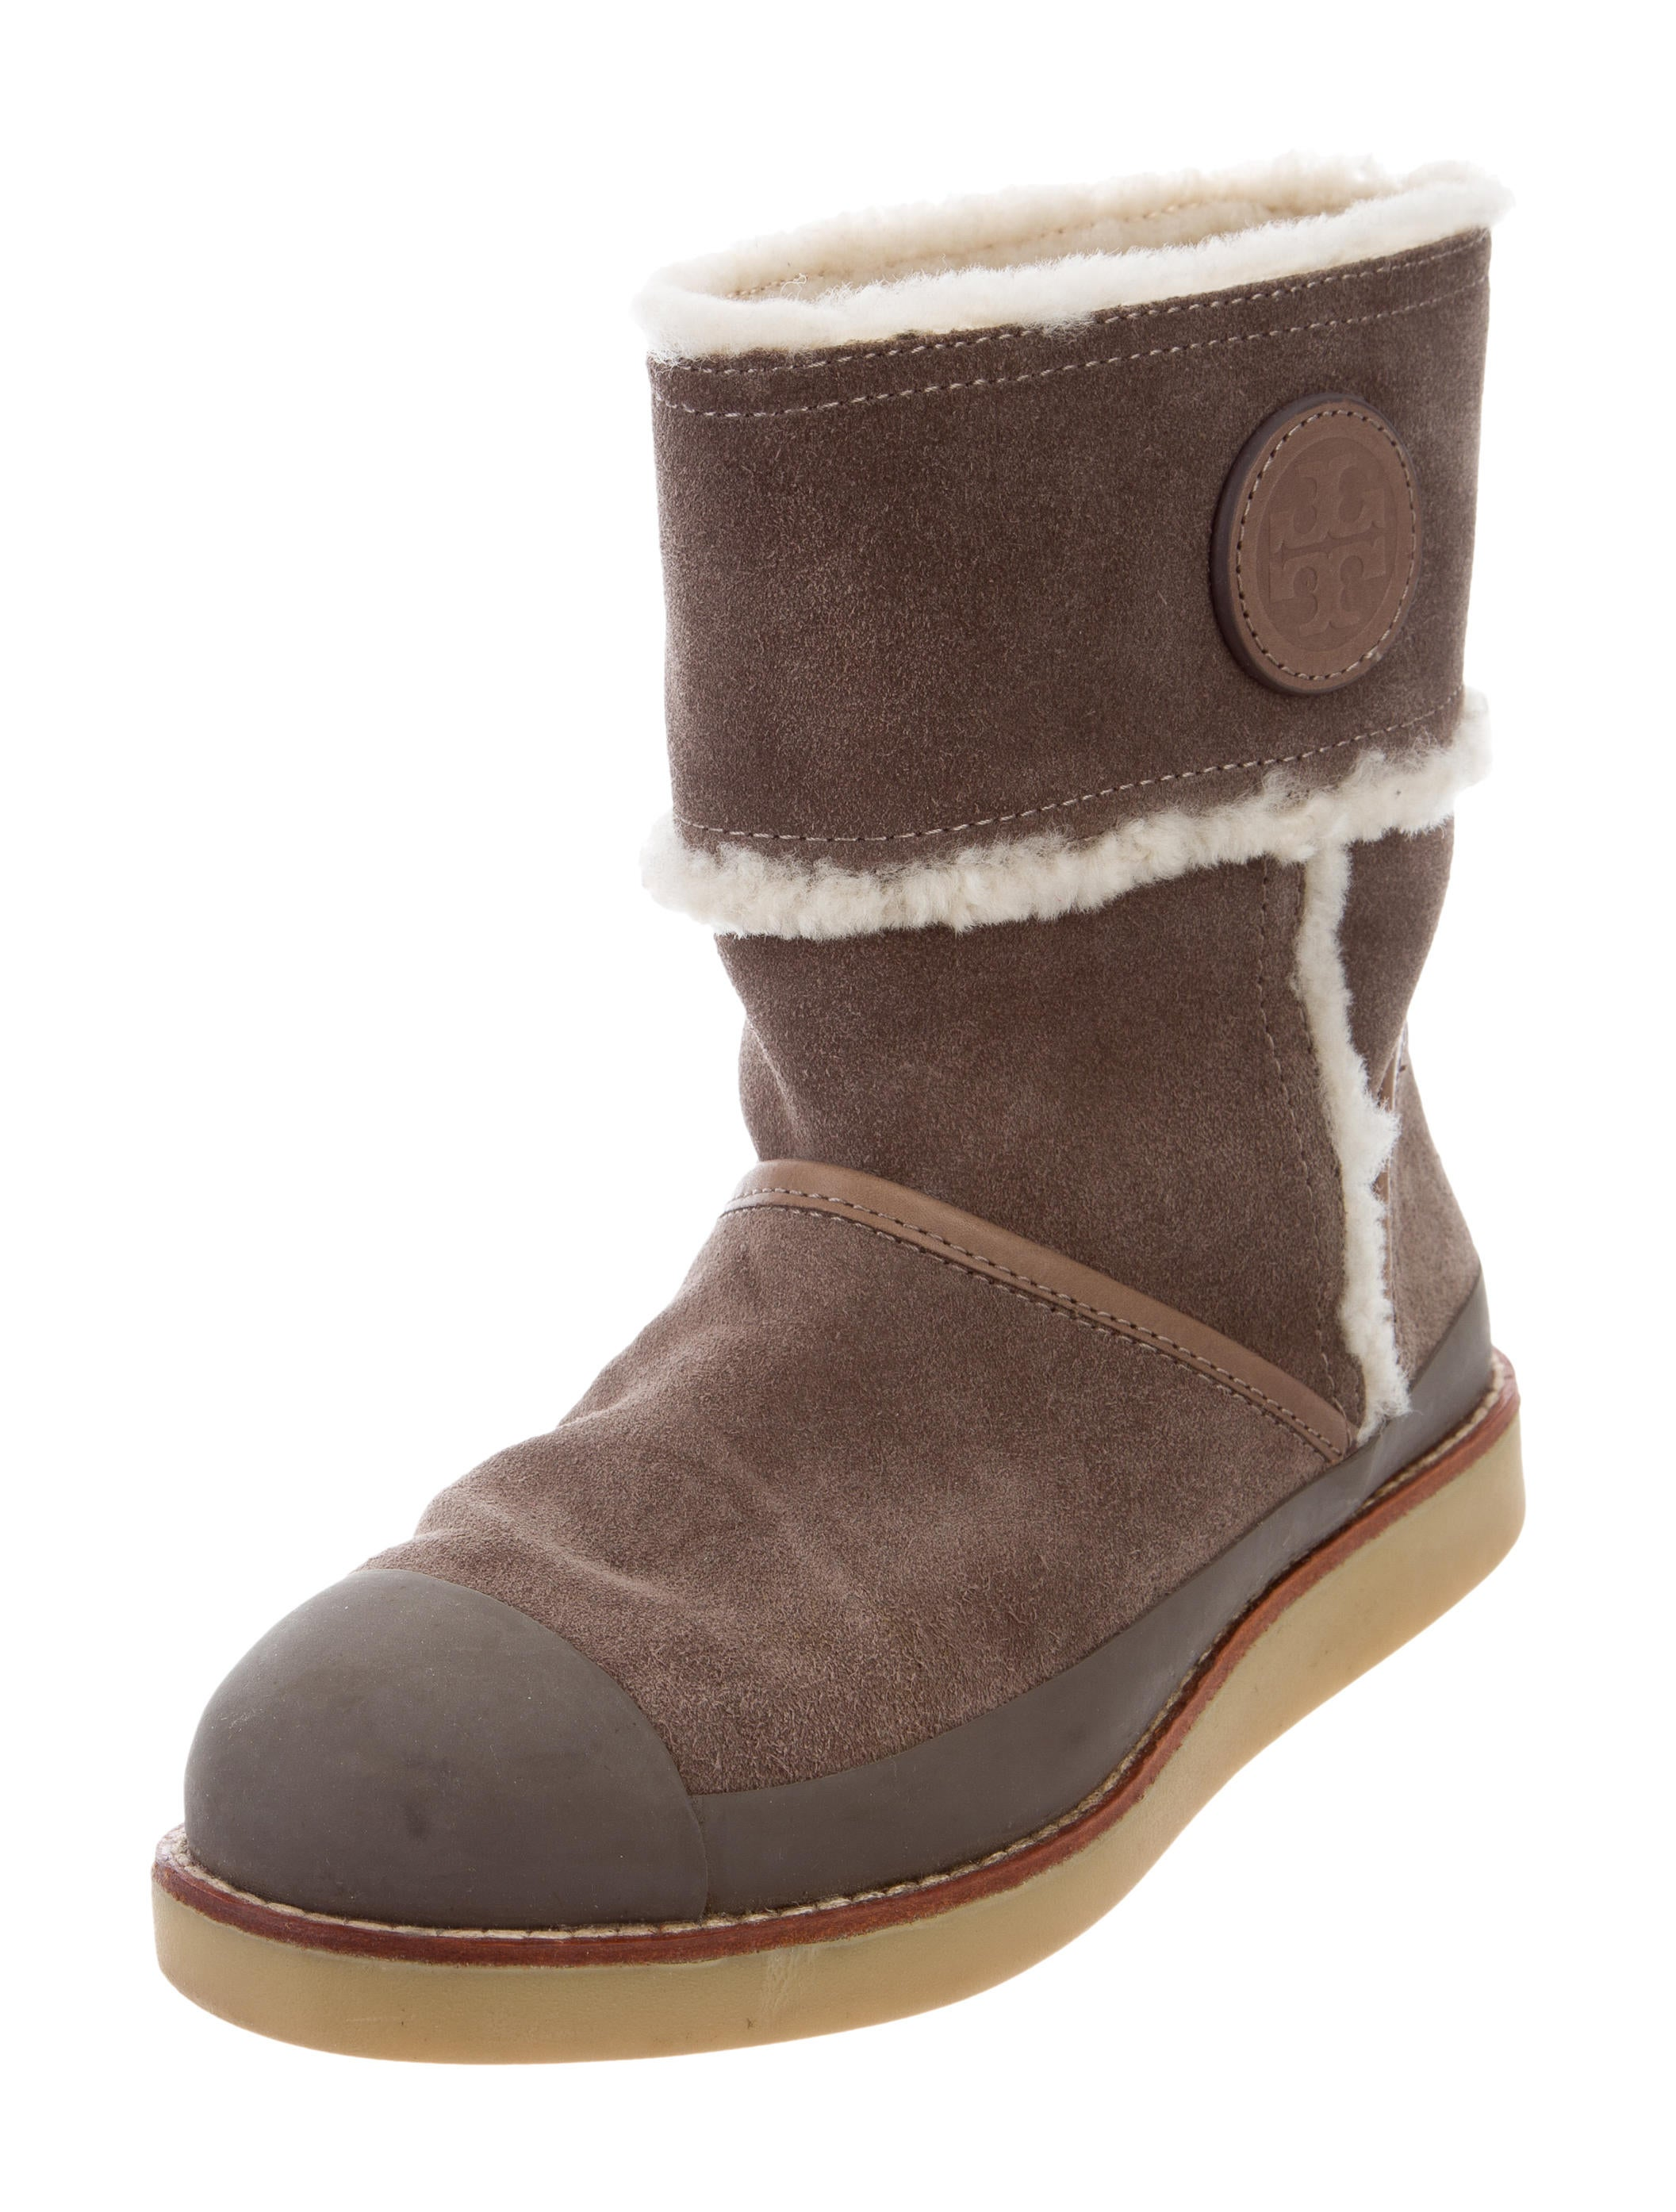 burch suede shearling trimmed boots shoes